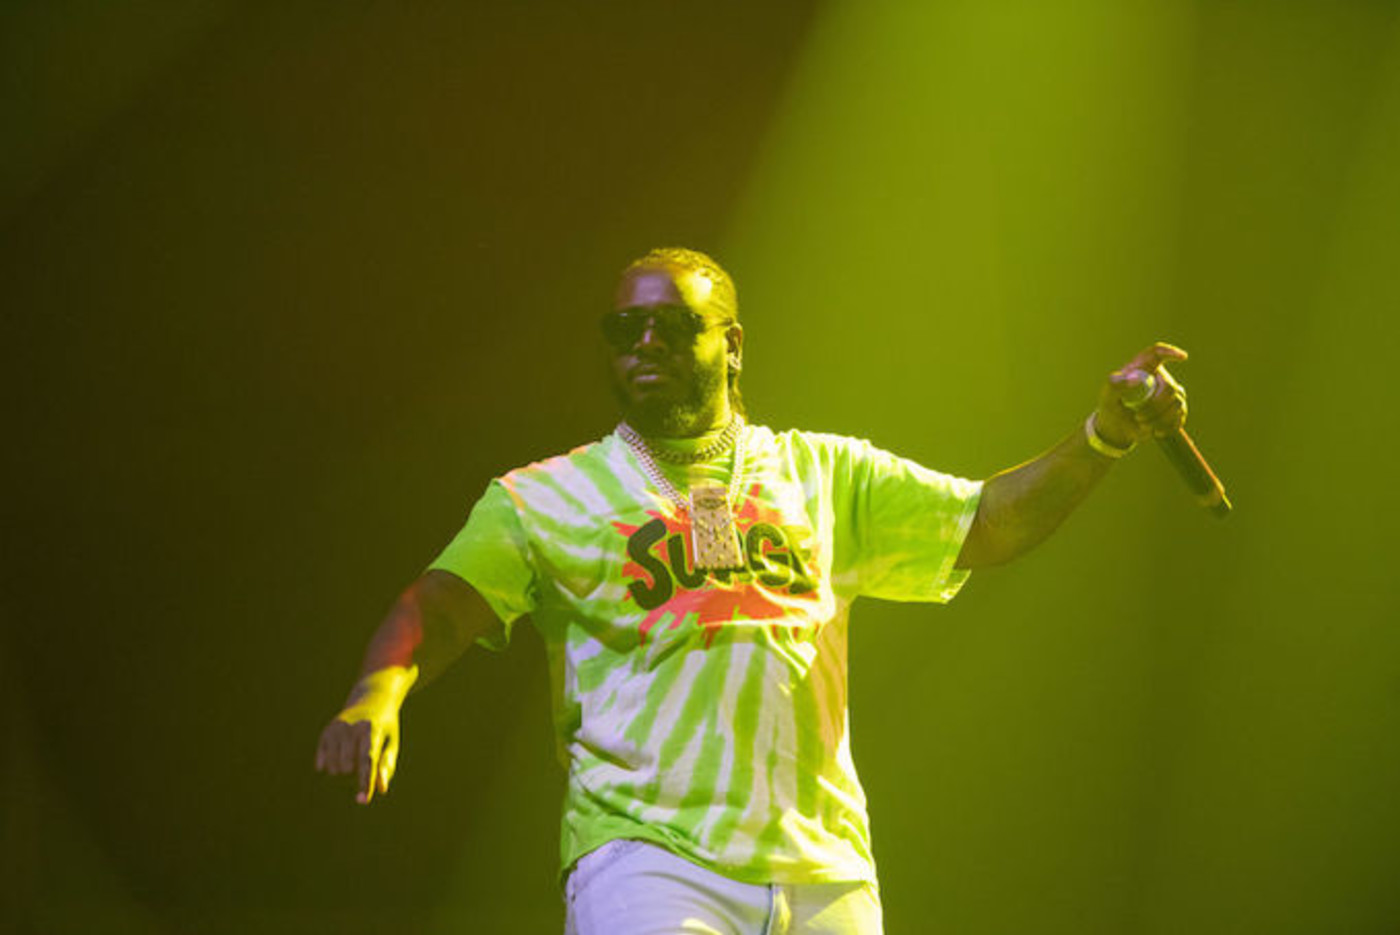 This is a picture of T-Pain.